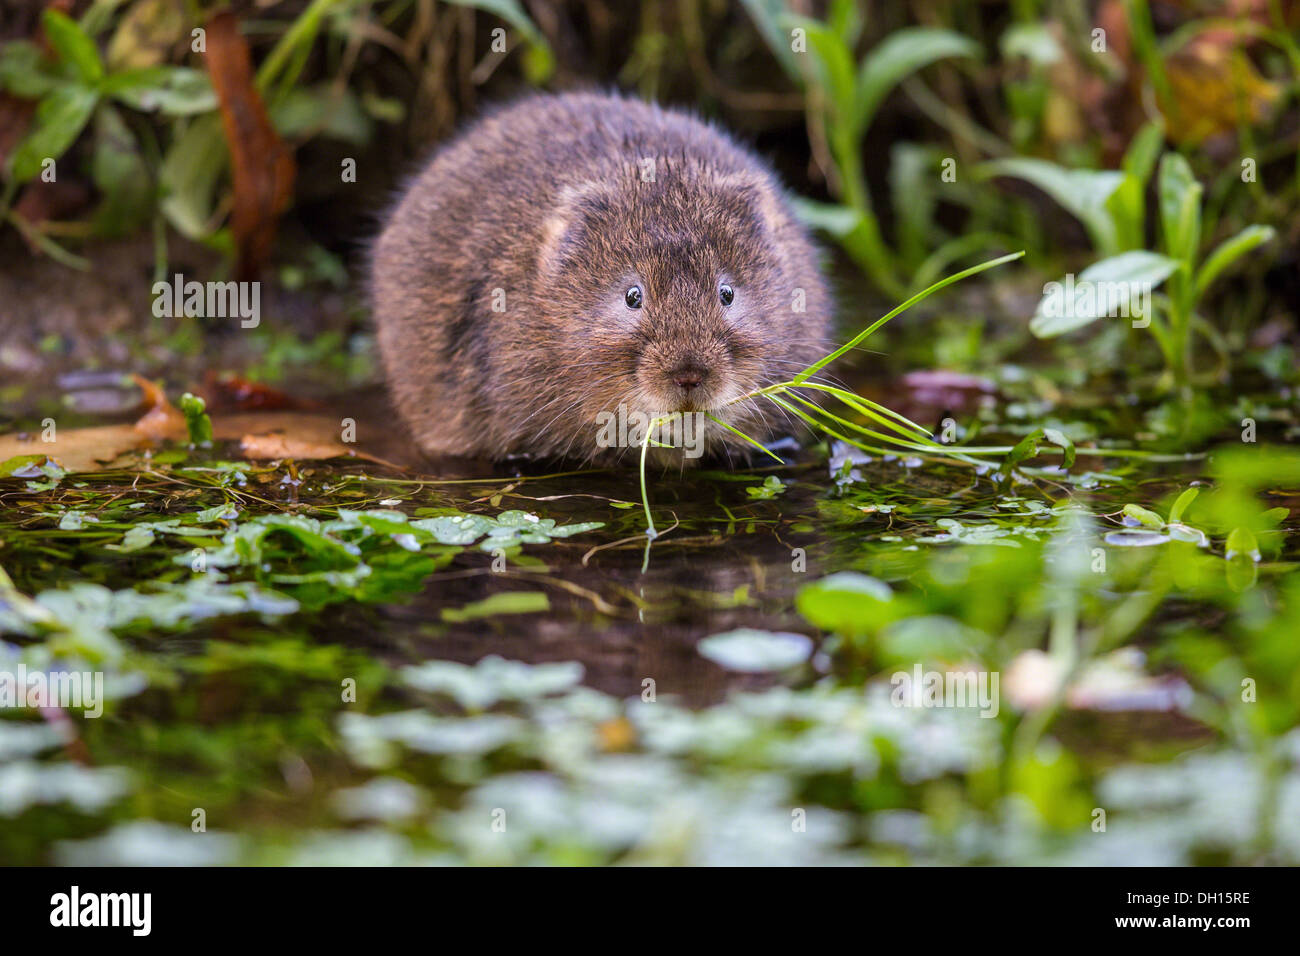 Eurasian water vole ( Arvicola amphibius) eating on the edge of a stream, Sussex, UK - Stock Image